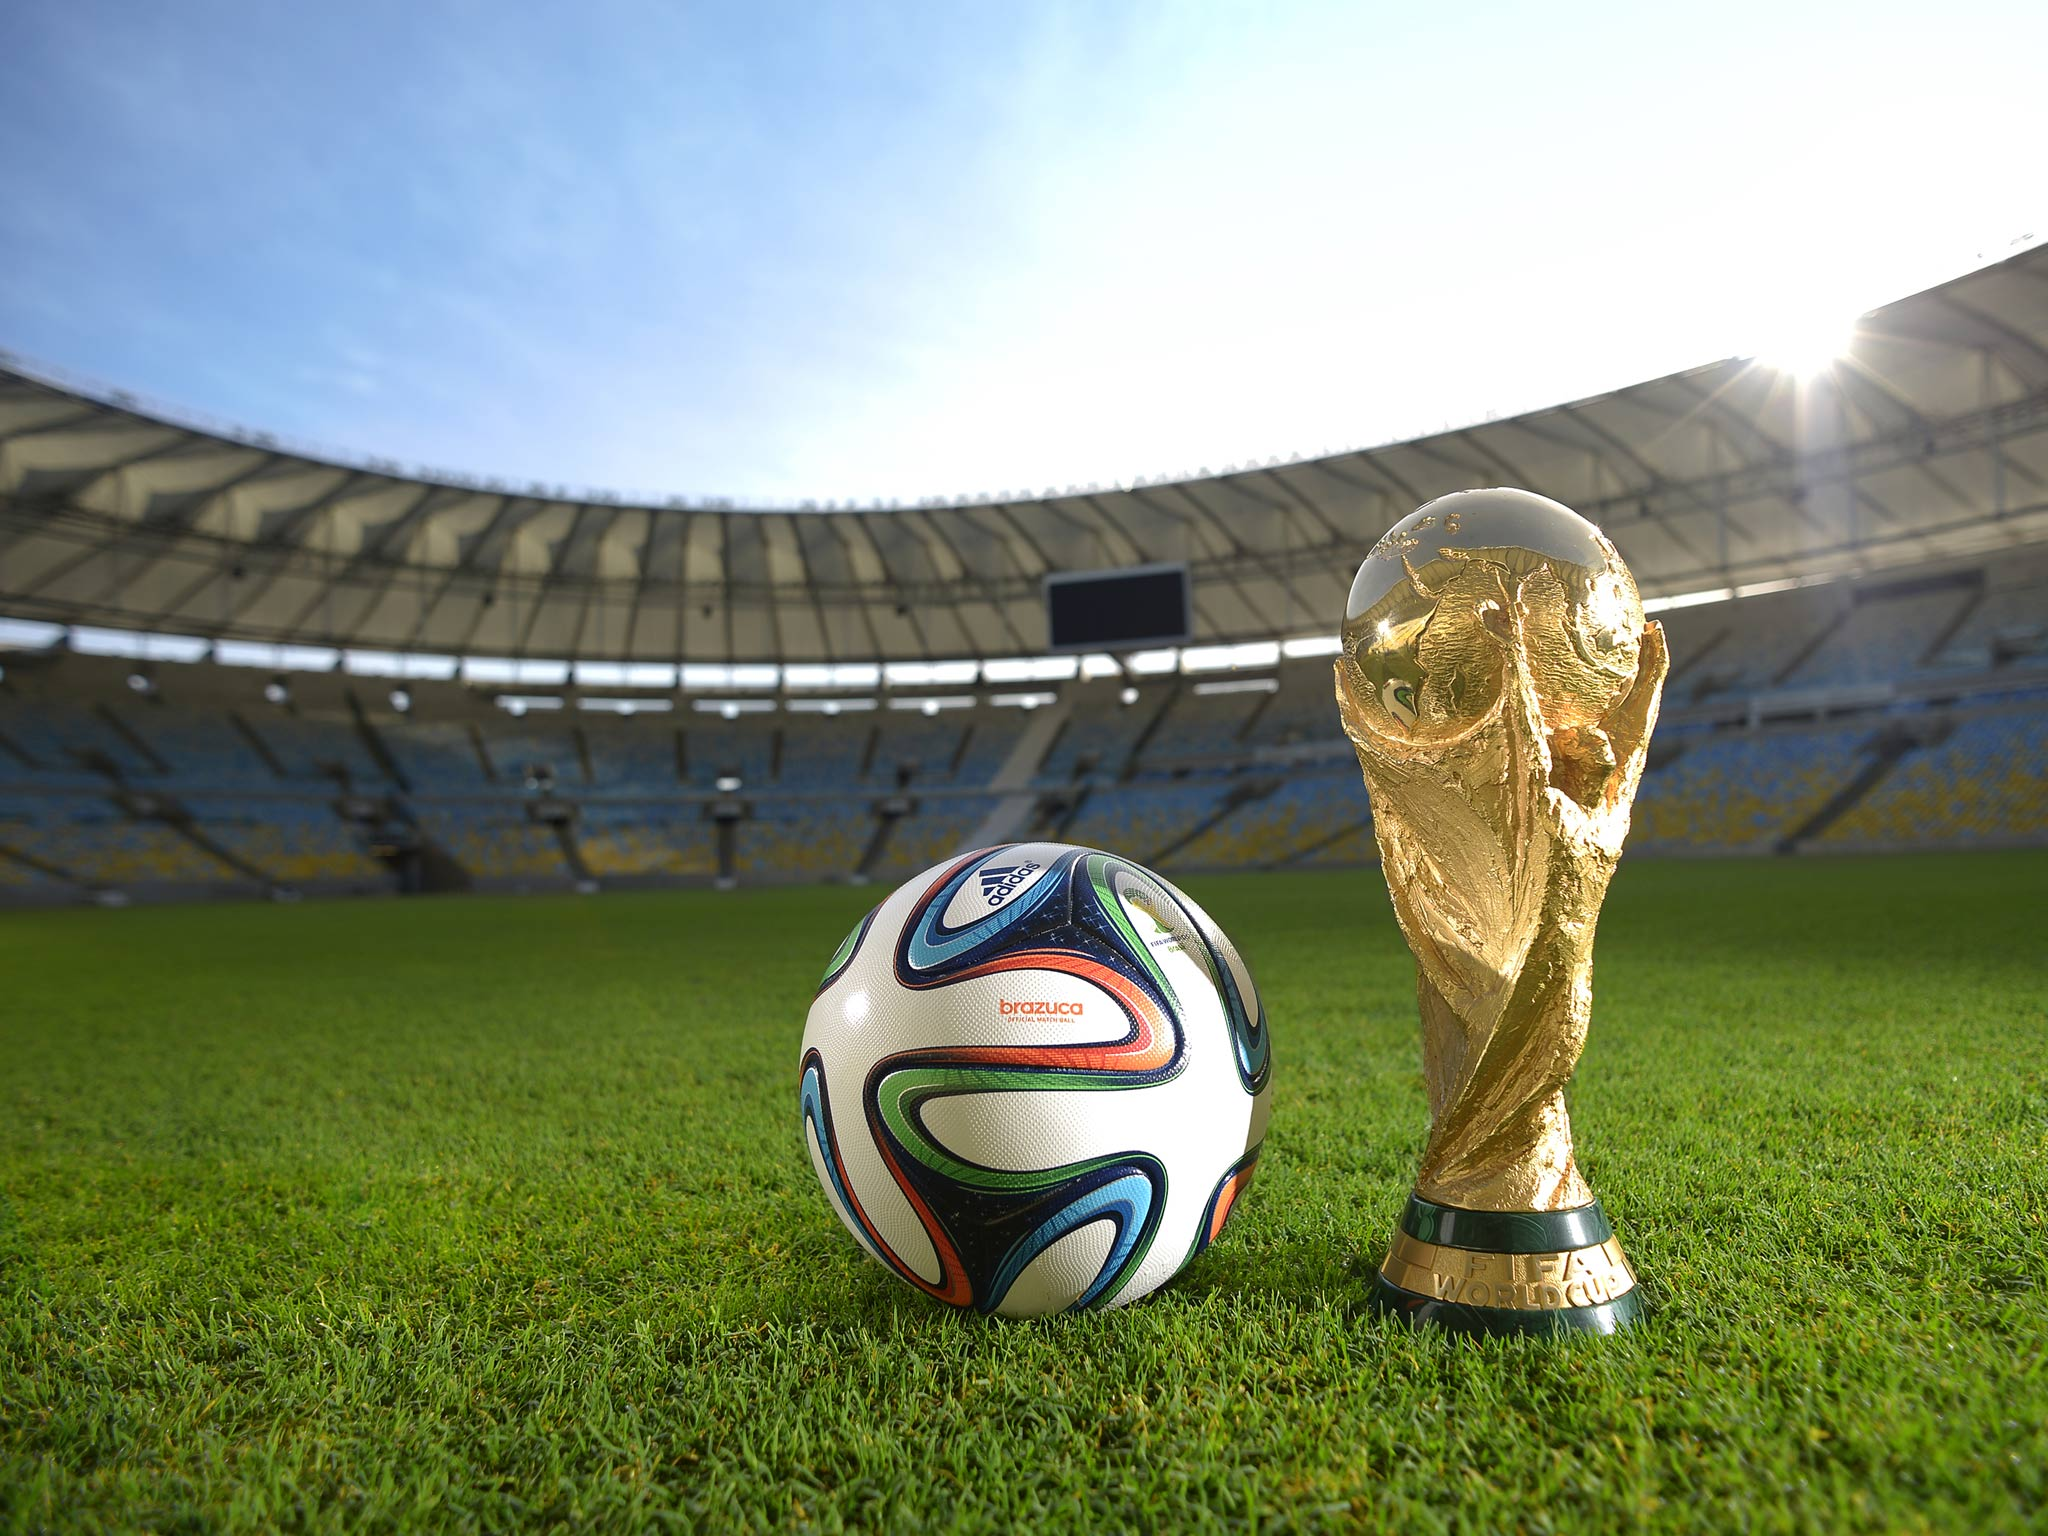 1fad99991 World Cup 2014 fixtures and dates  Kick-off times for every game ...